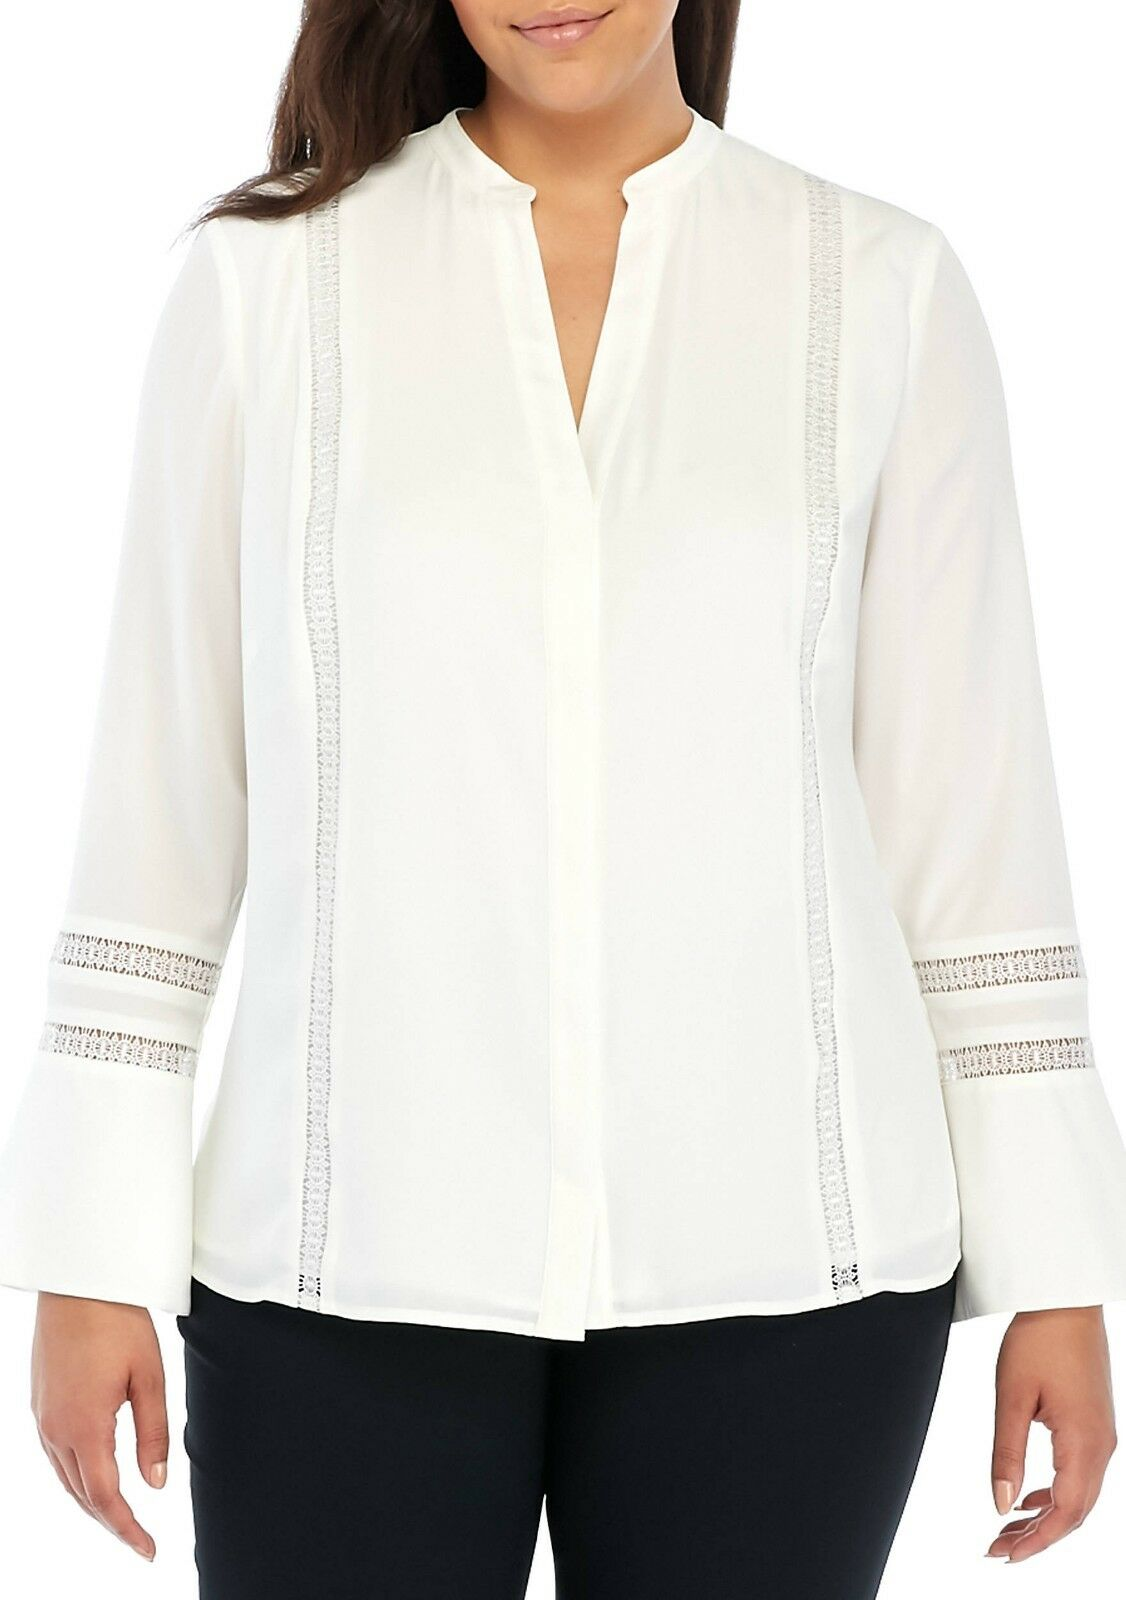 THE LIMITED® Plus Size 3X Ivory Lace Inset Blouse NWT